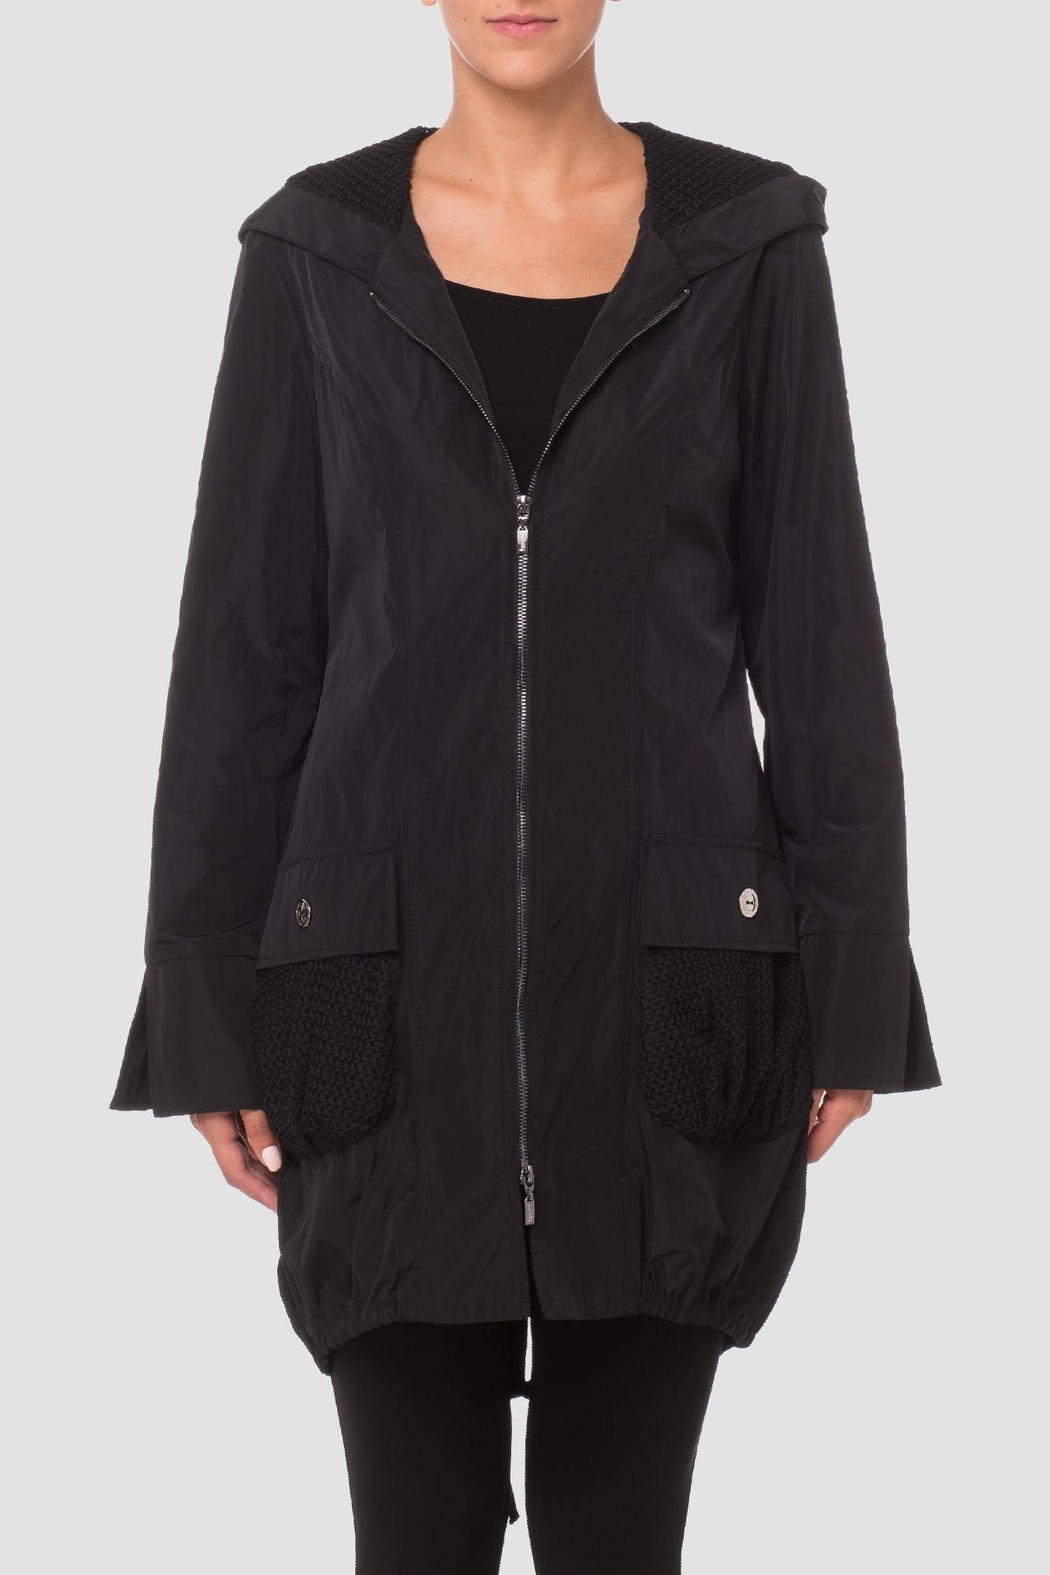 Joseph Ribkoff Black Bubble Coat from Canada by Gaia Boutique ...